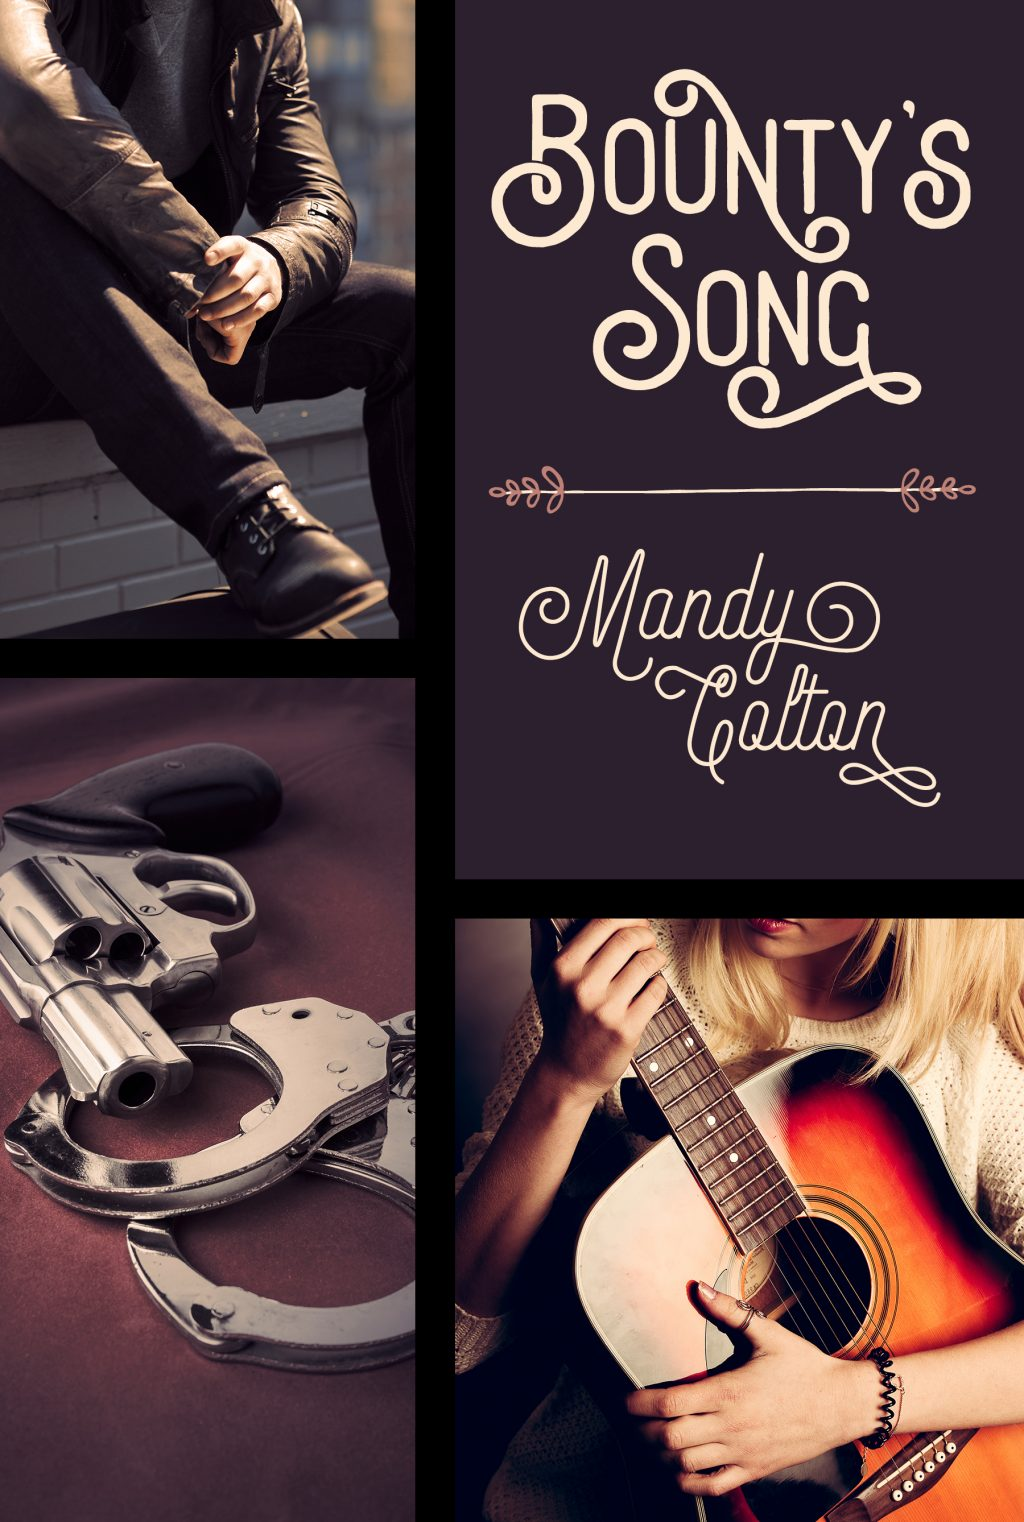 Bounty's Song by Mandy Colton